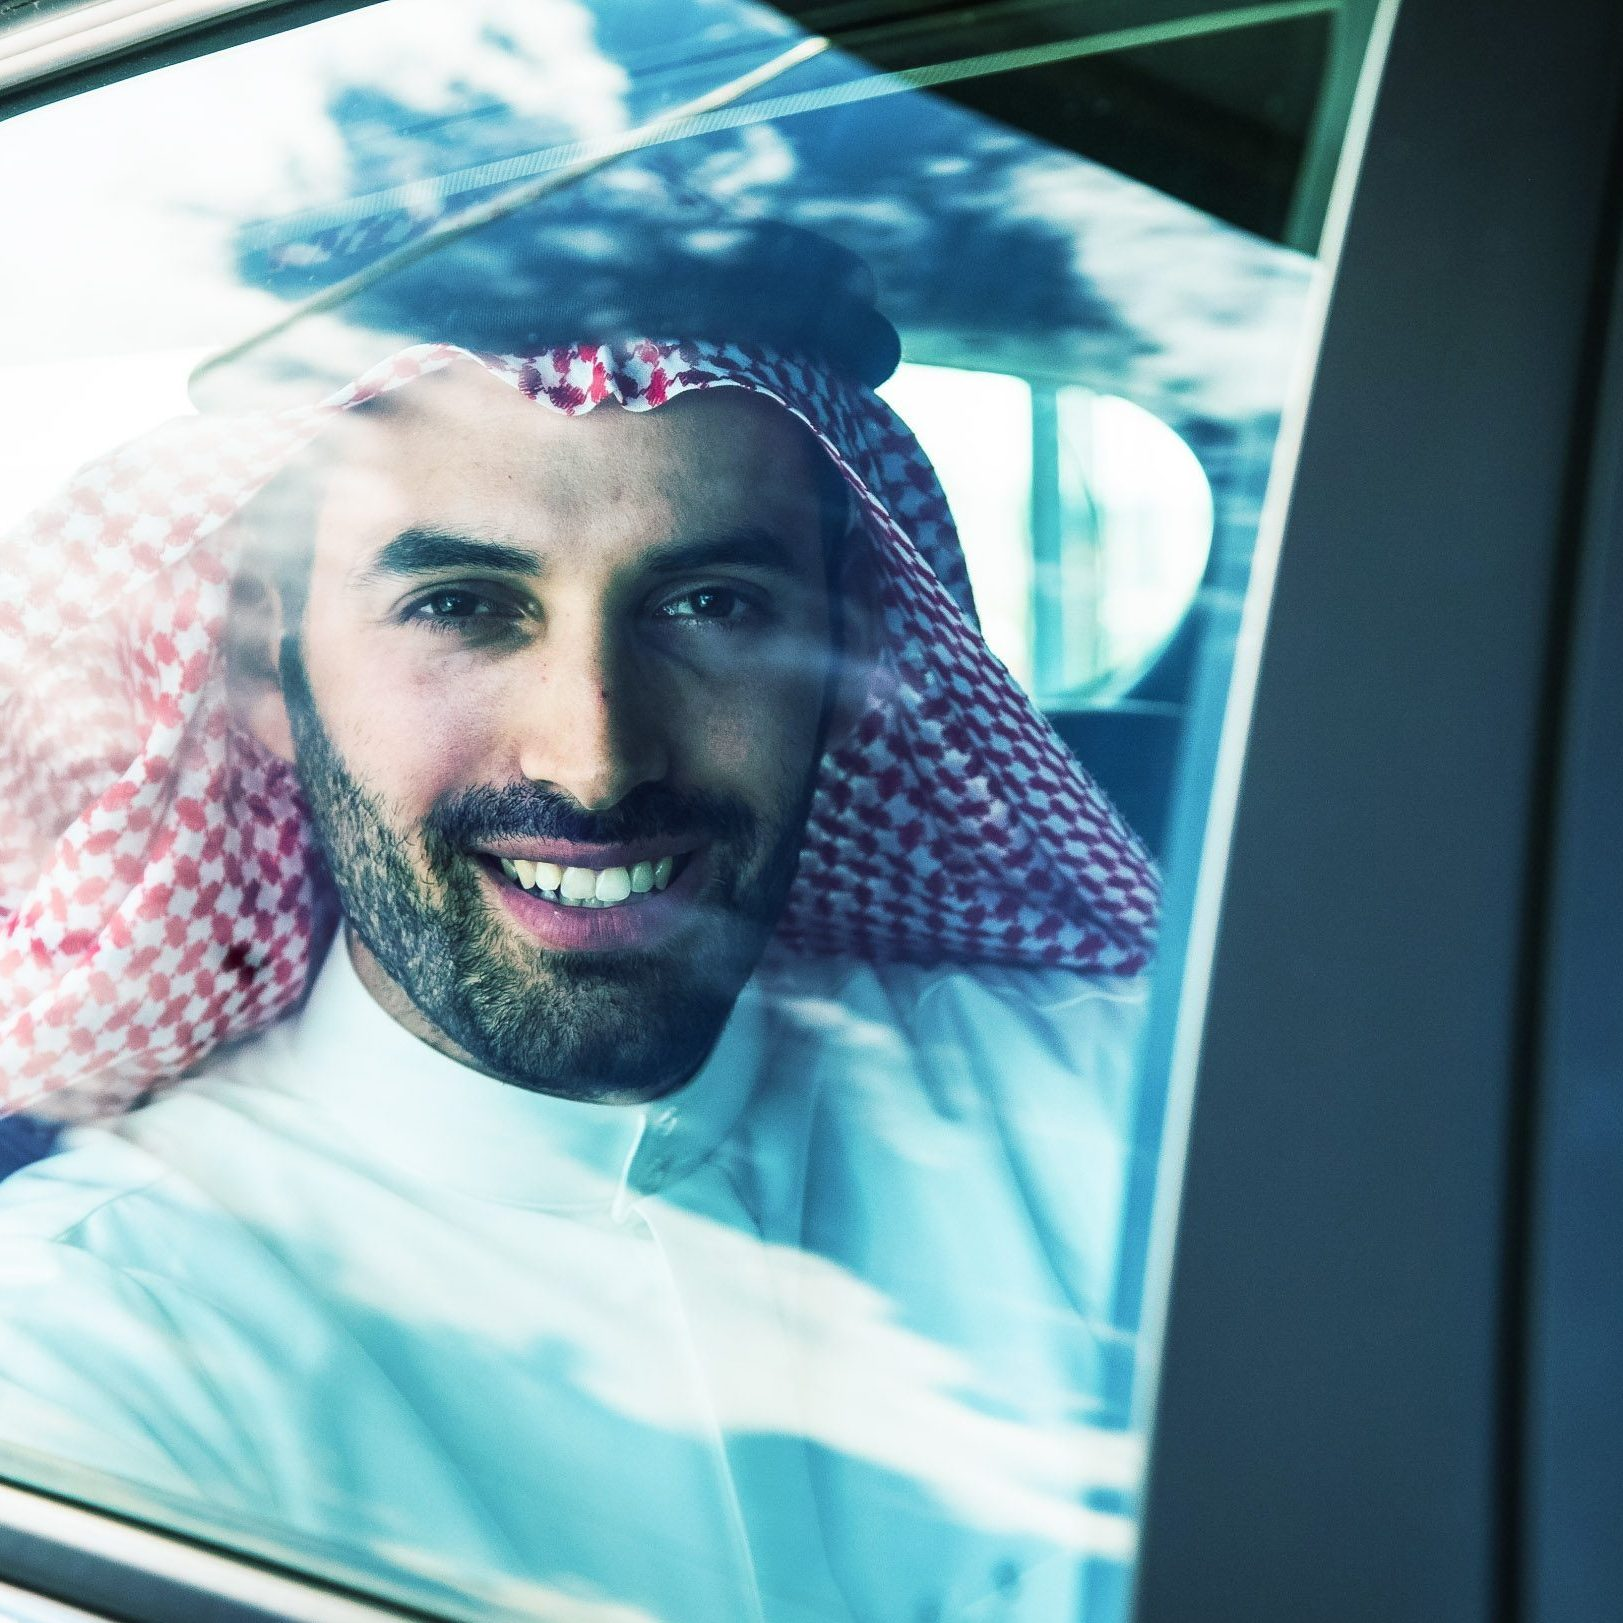 Man from Saudi looking out car window